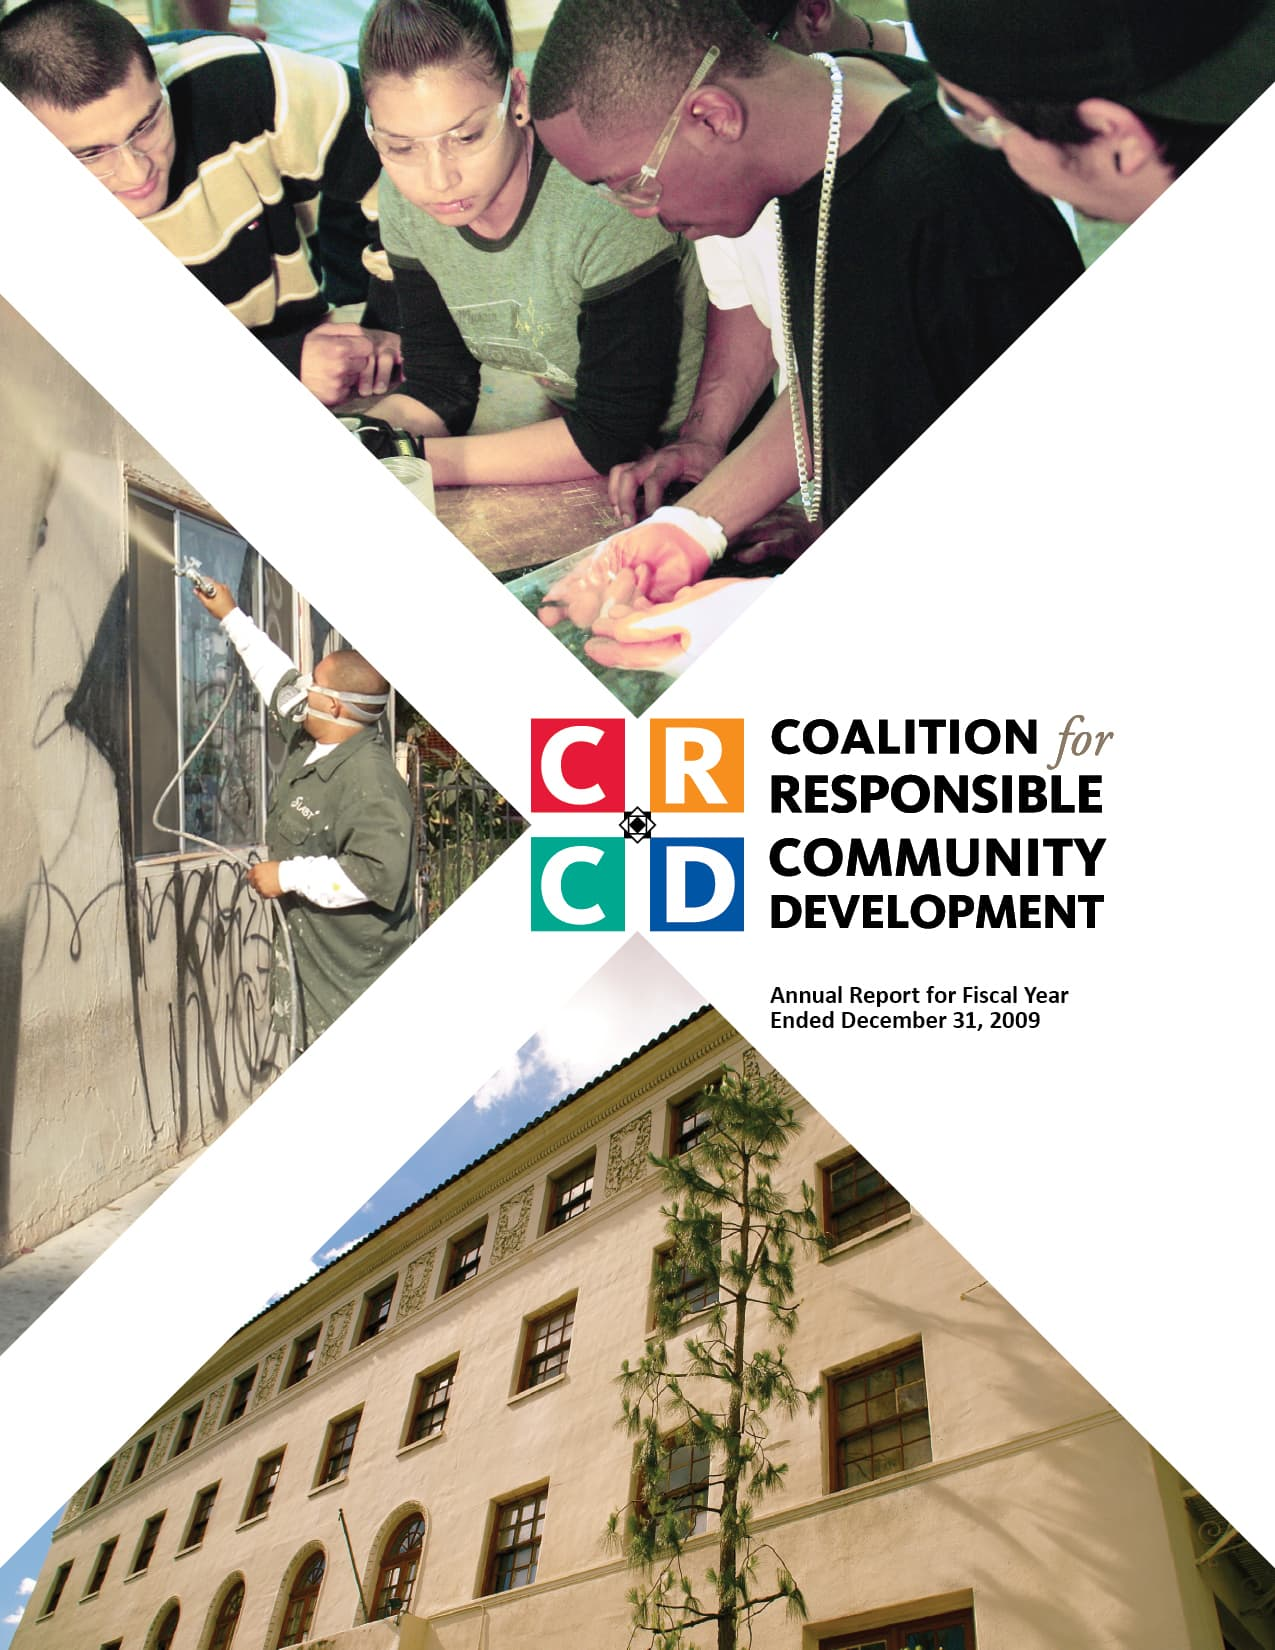 annual report for Coalition for Responsible Community Development (CRCD)